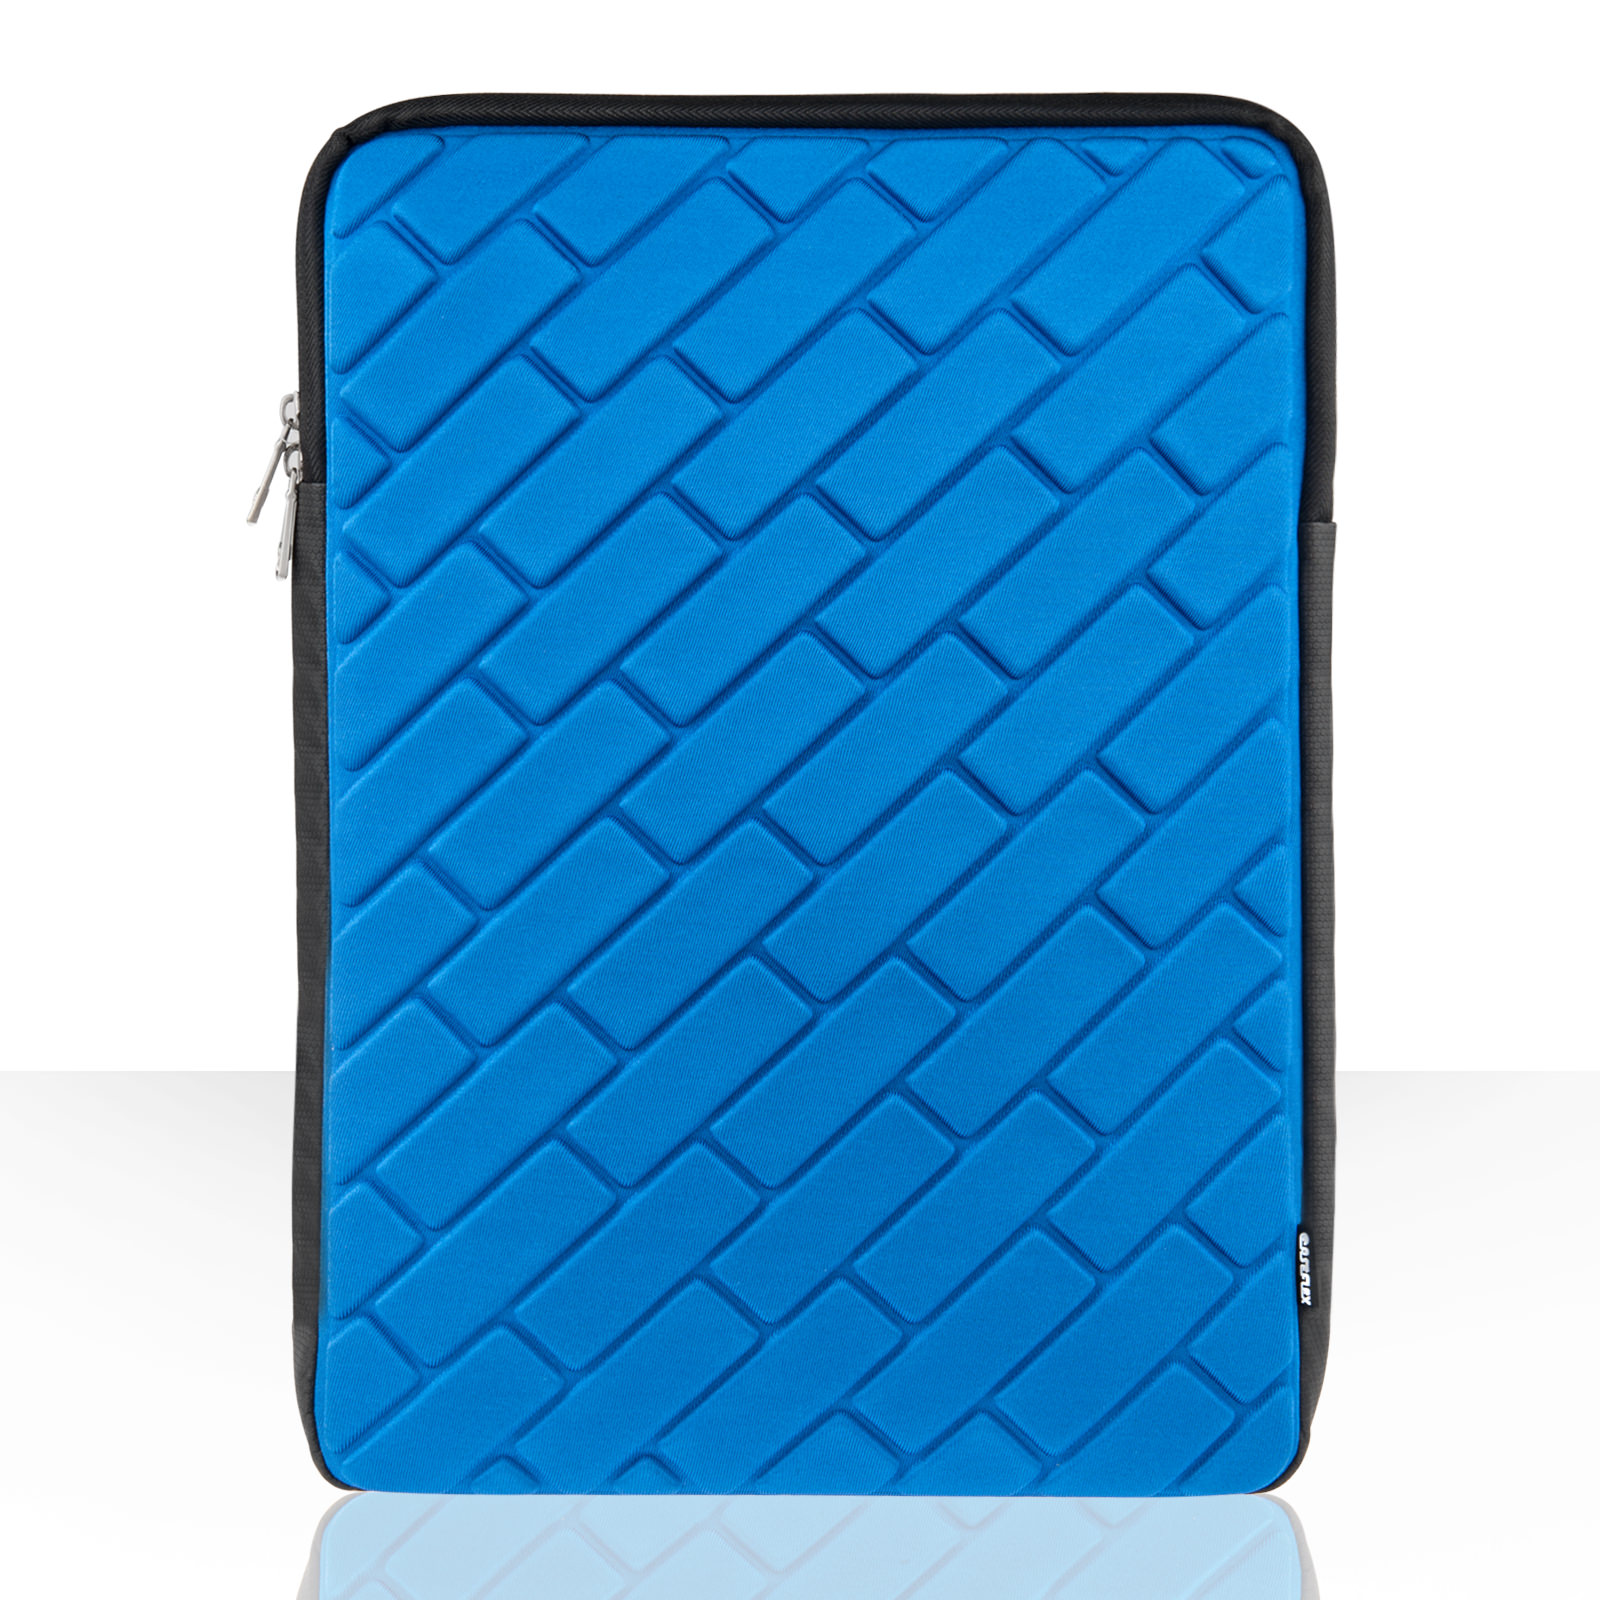 "Caseflex Brick Pattern 15.6"" Laptop Pouch - Blue"